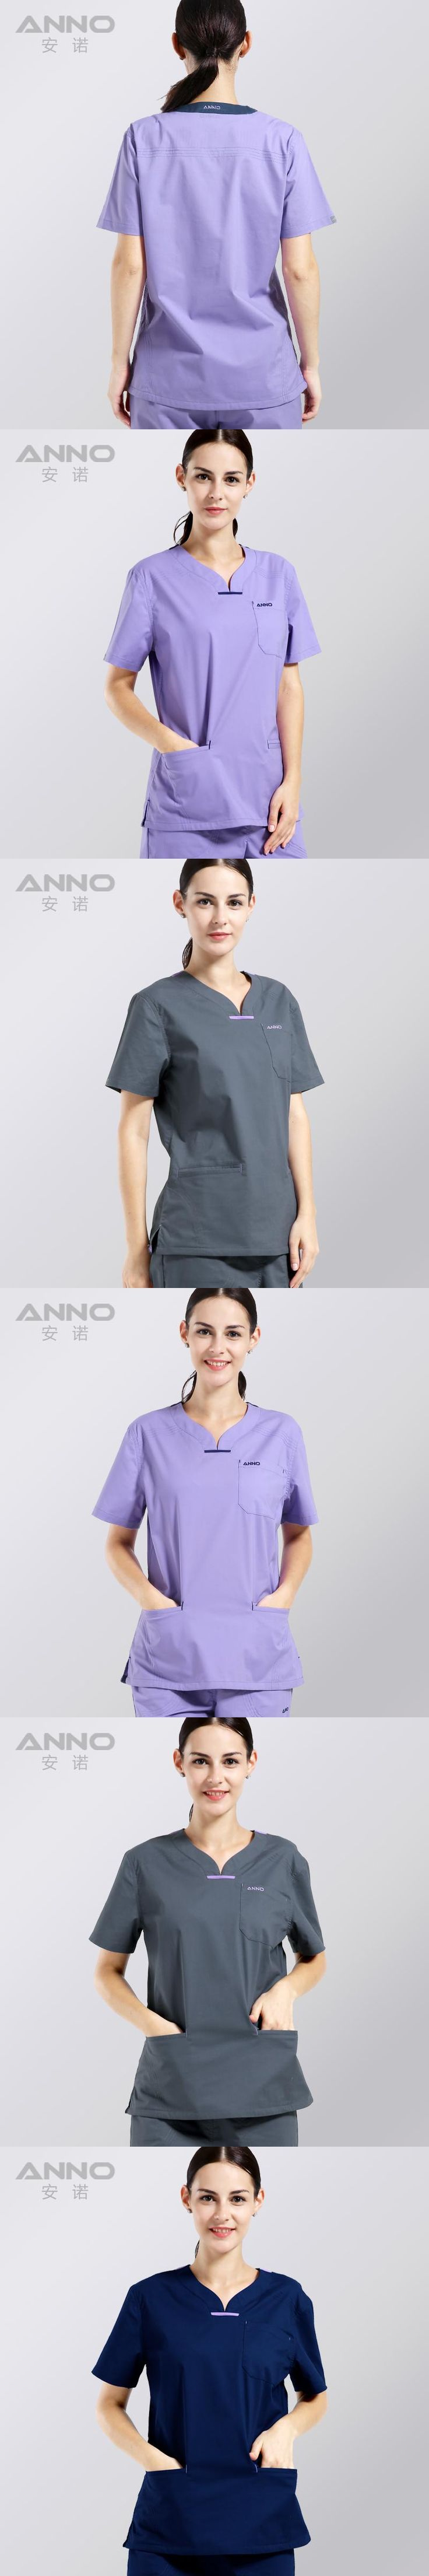 summer women's clothing medical hospital scrubs nurse uniform dental clinic and beauty salon fashion design slim fit